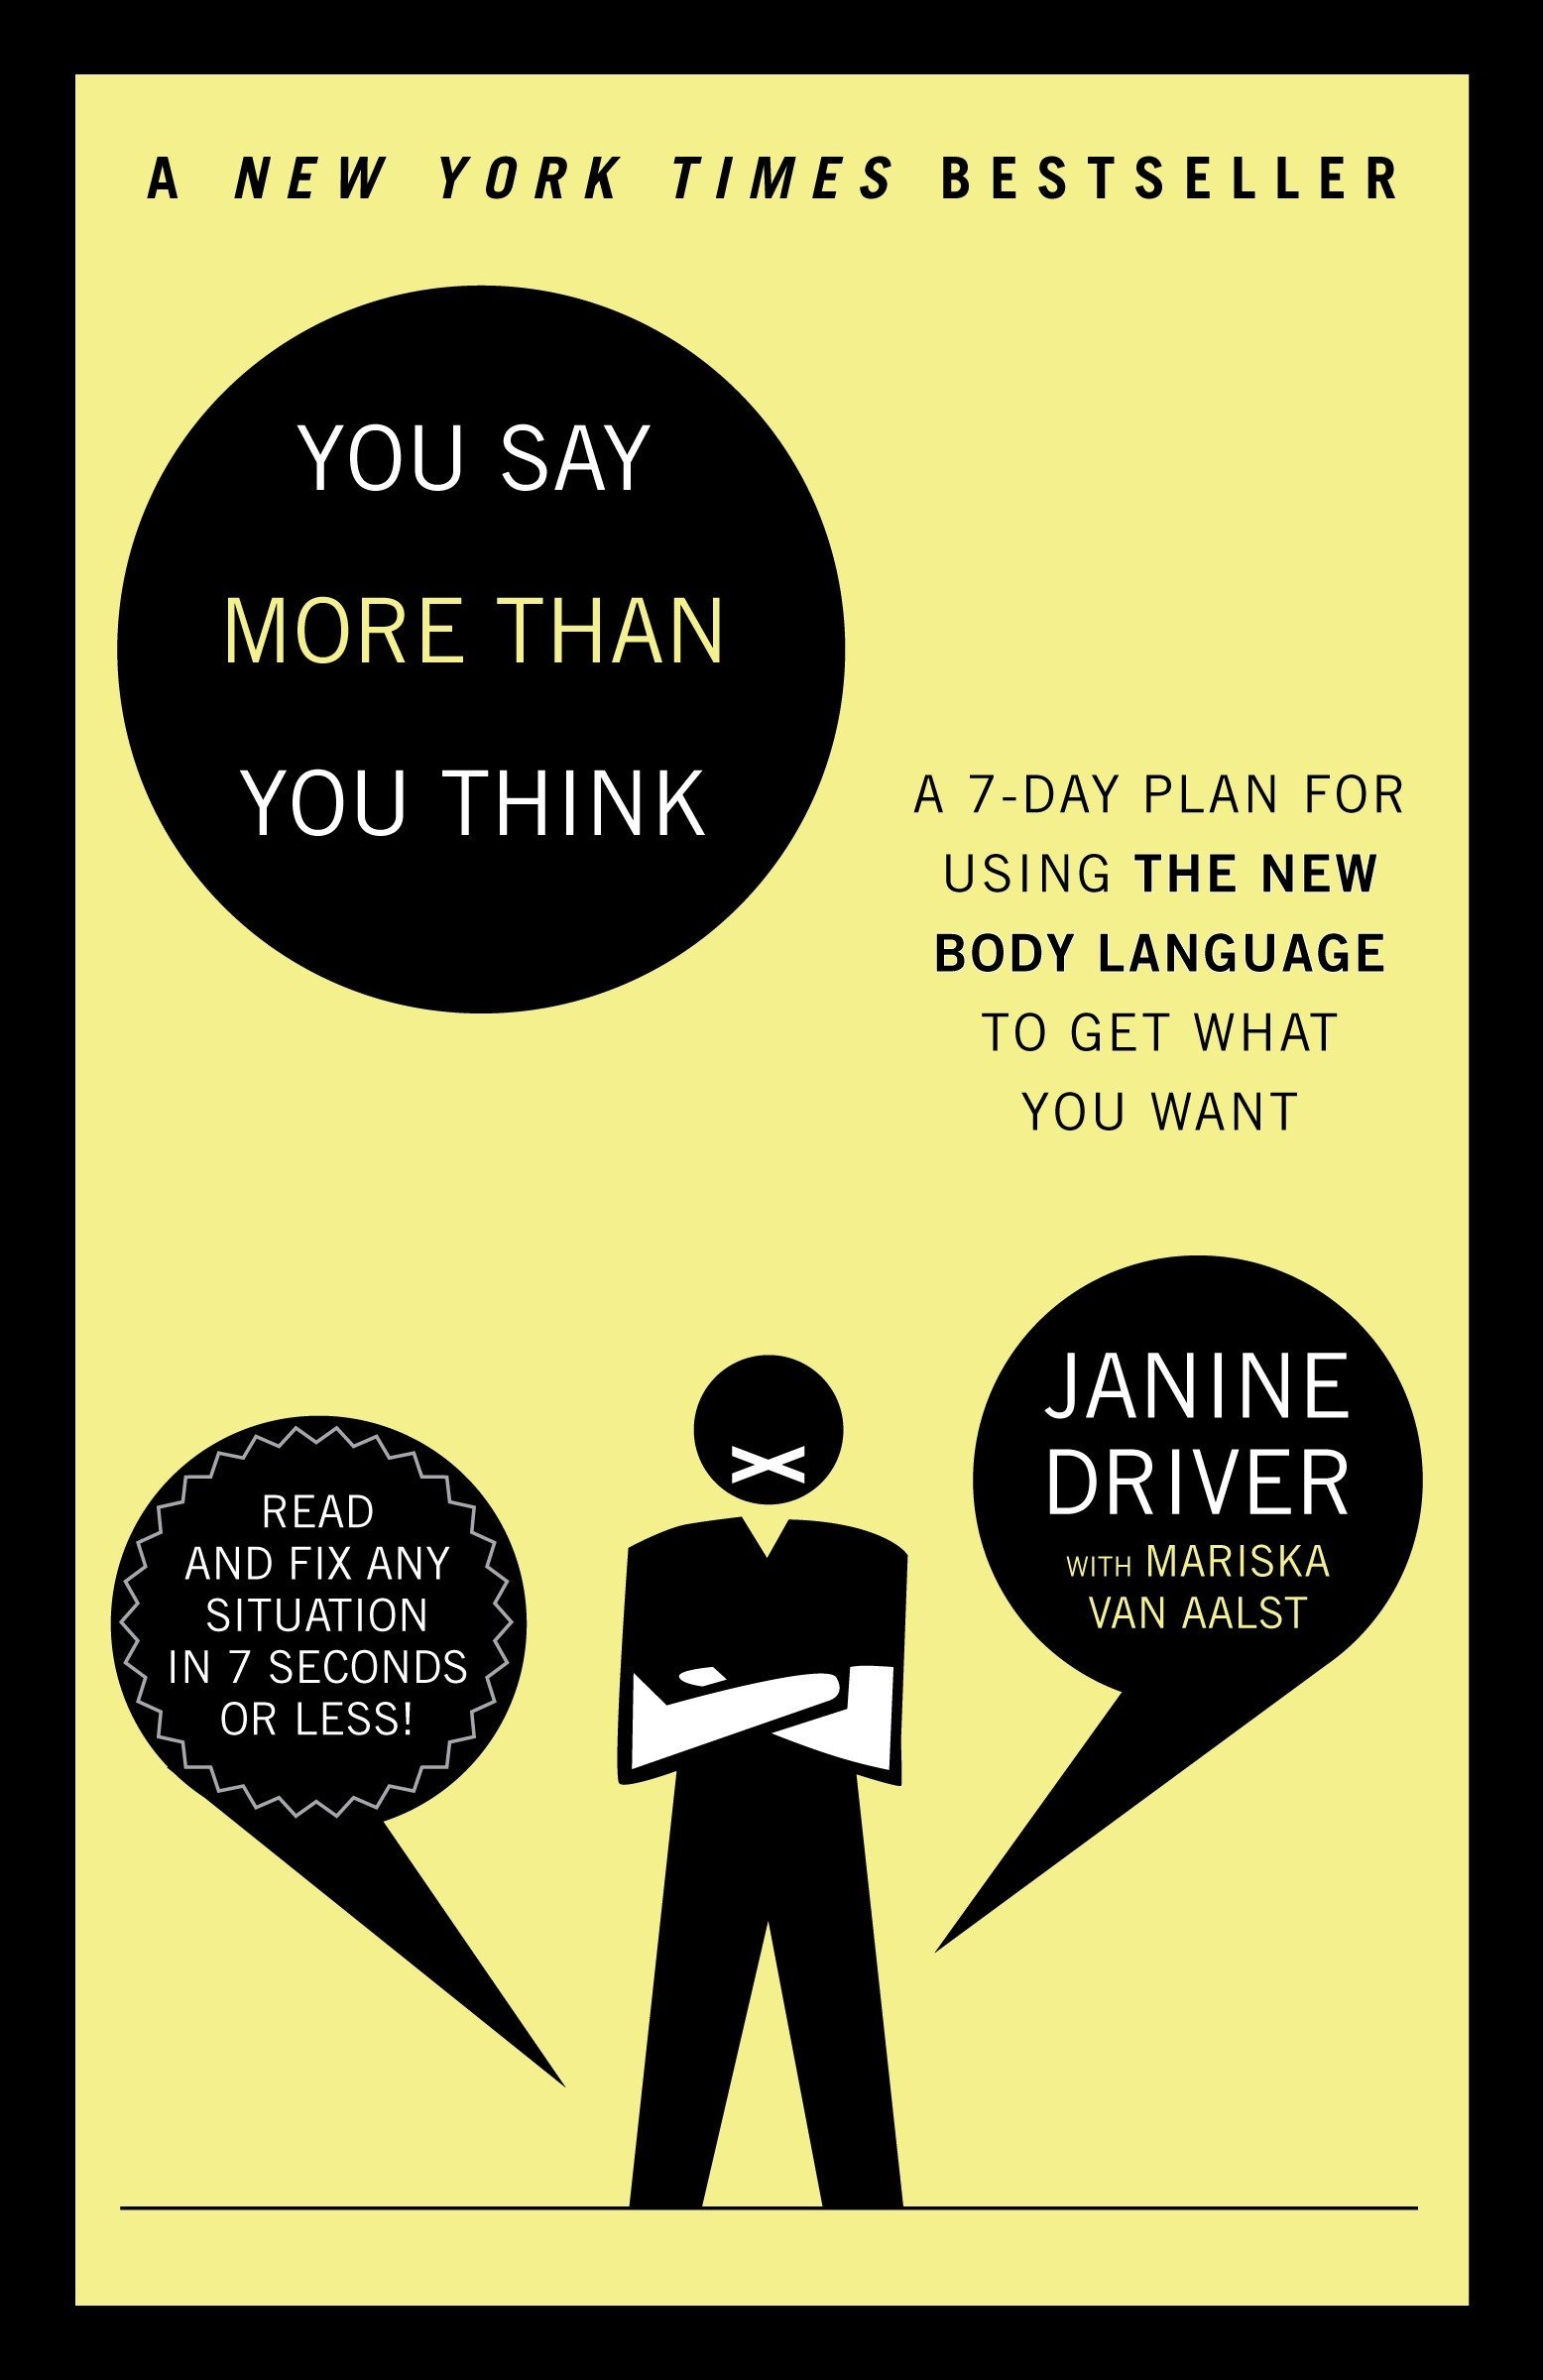 You Say More Than You Think: A 7-Day Plan for Using the New Body Language to Get What You Want